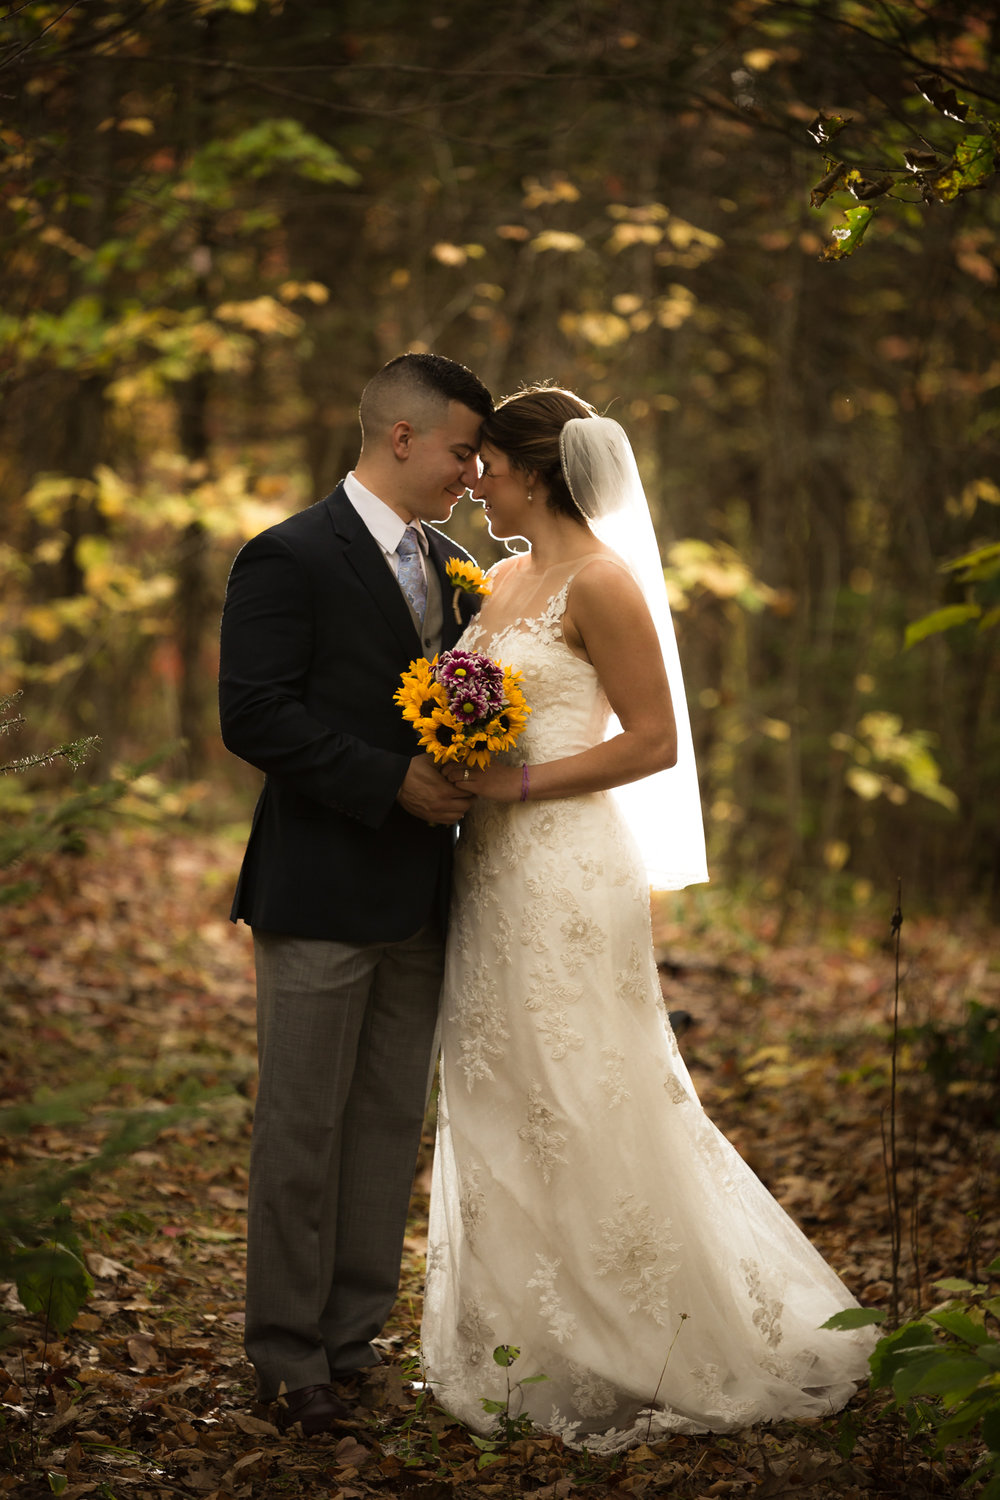 Maine-New-Hampshire-Wedding-Photography-Bride-Groom_Megan-Joseph-Schneiderat_Creative-Edge-Arts-3.jpg